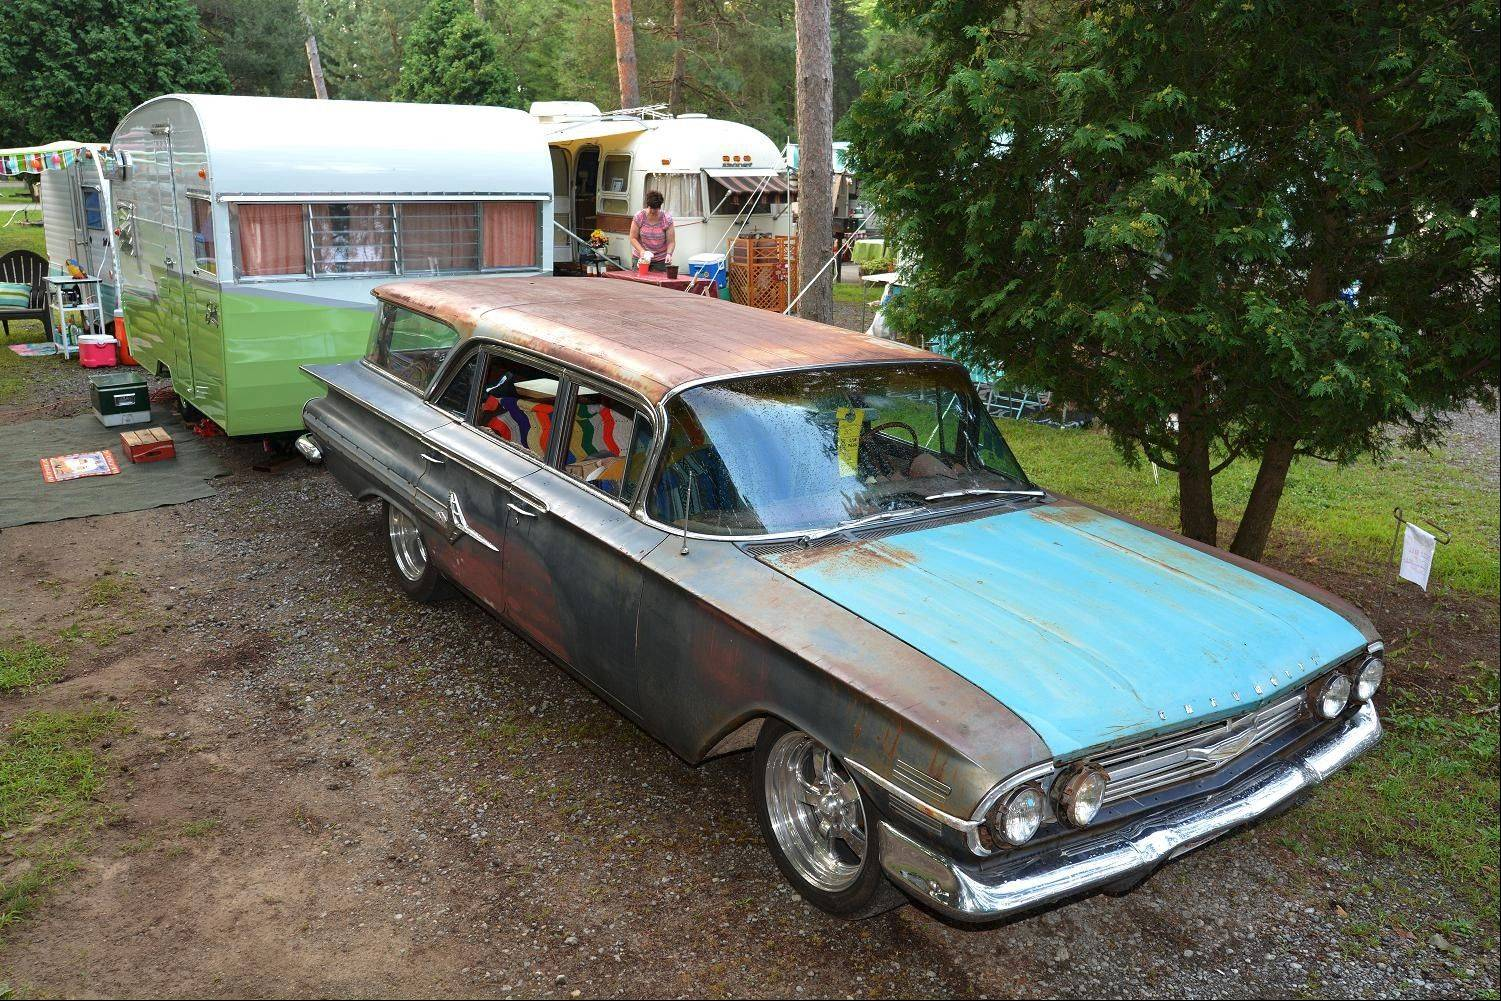 For that true yesteryear look, many of the enthusiasts opt to tow their vintage trailer with a vintage car. Jeff and Paula Higdon, of Whitesville, Ky., are overhauling this 1960 Chevrolet Impala Nomad and use it to haul their 1963 Shasta AirFlight trailer.